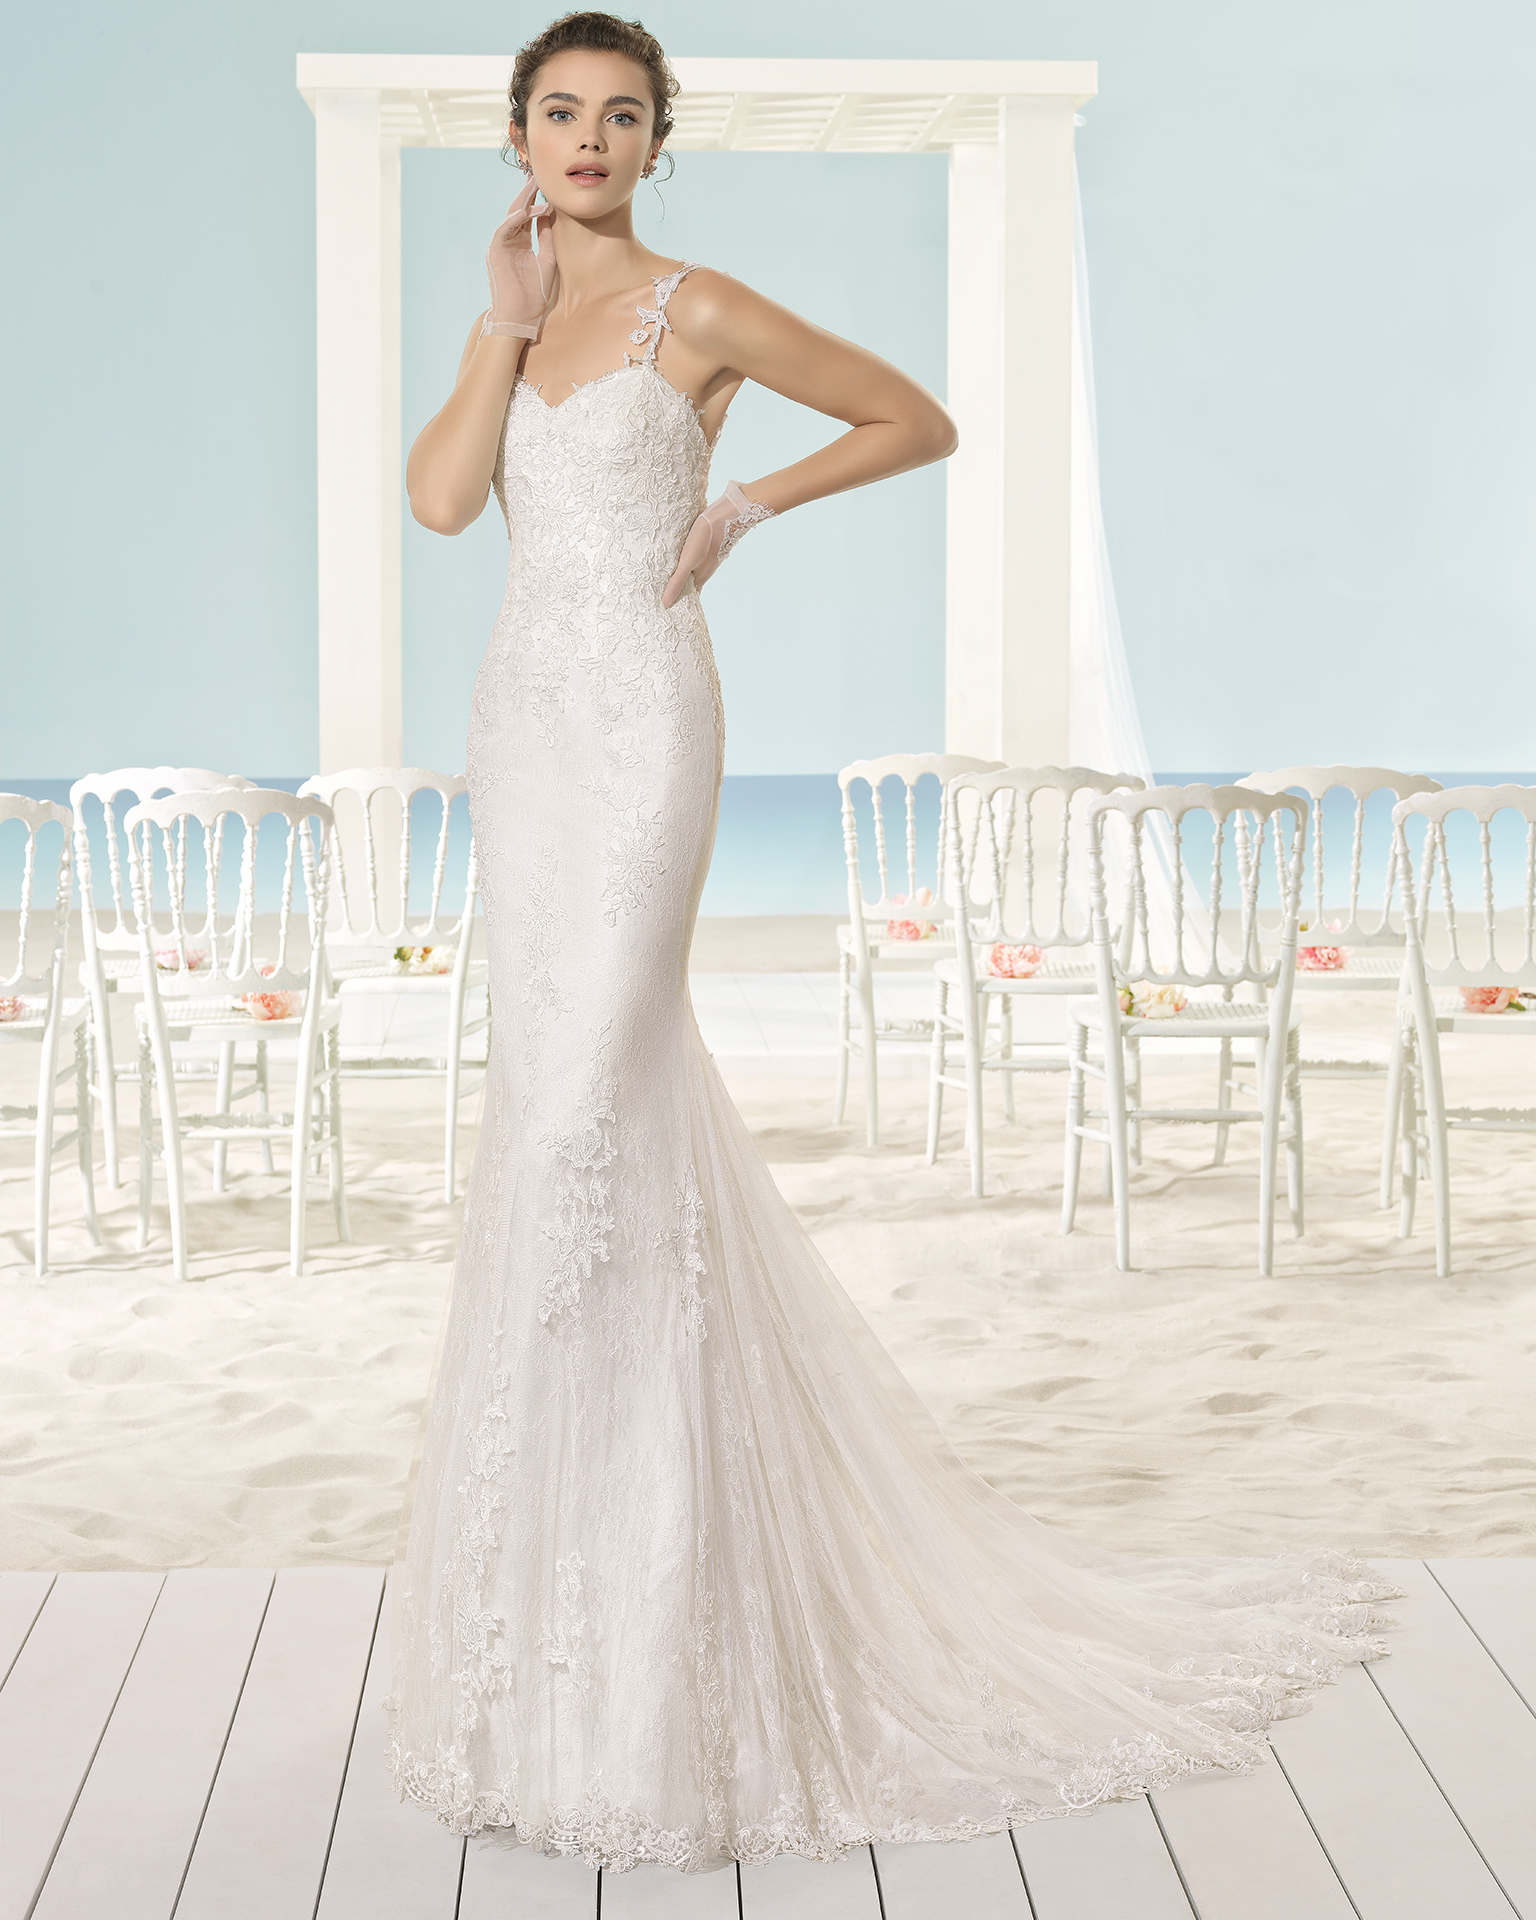 XOEL Abito da sposa Aire Barcelona Beach Wedding 2017